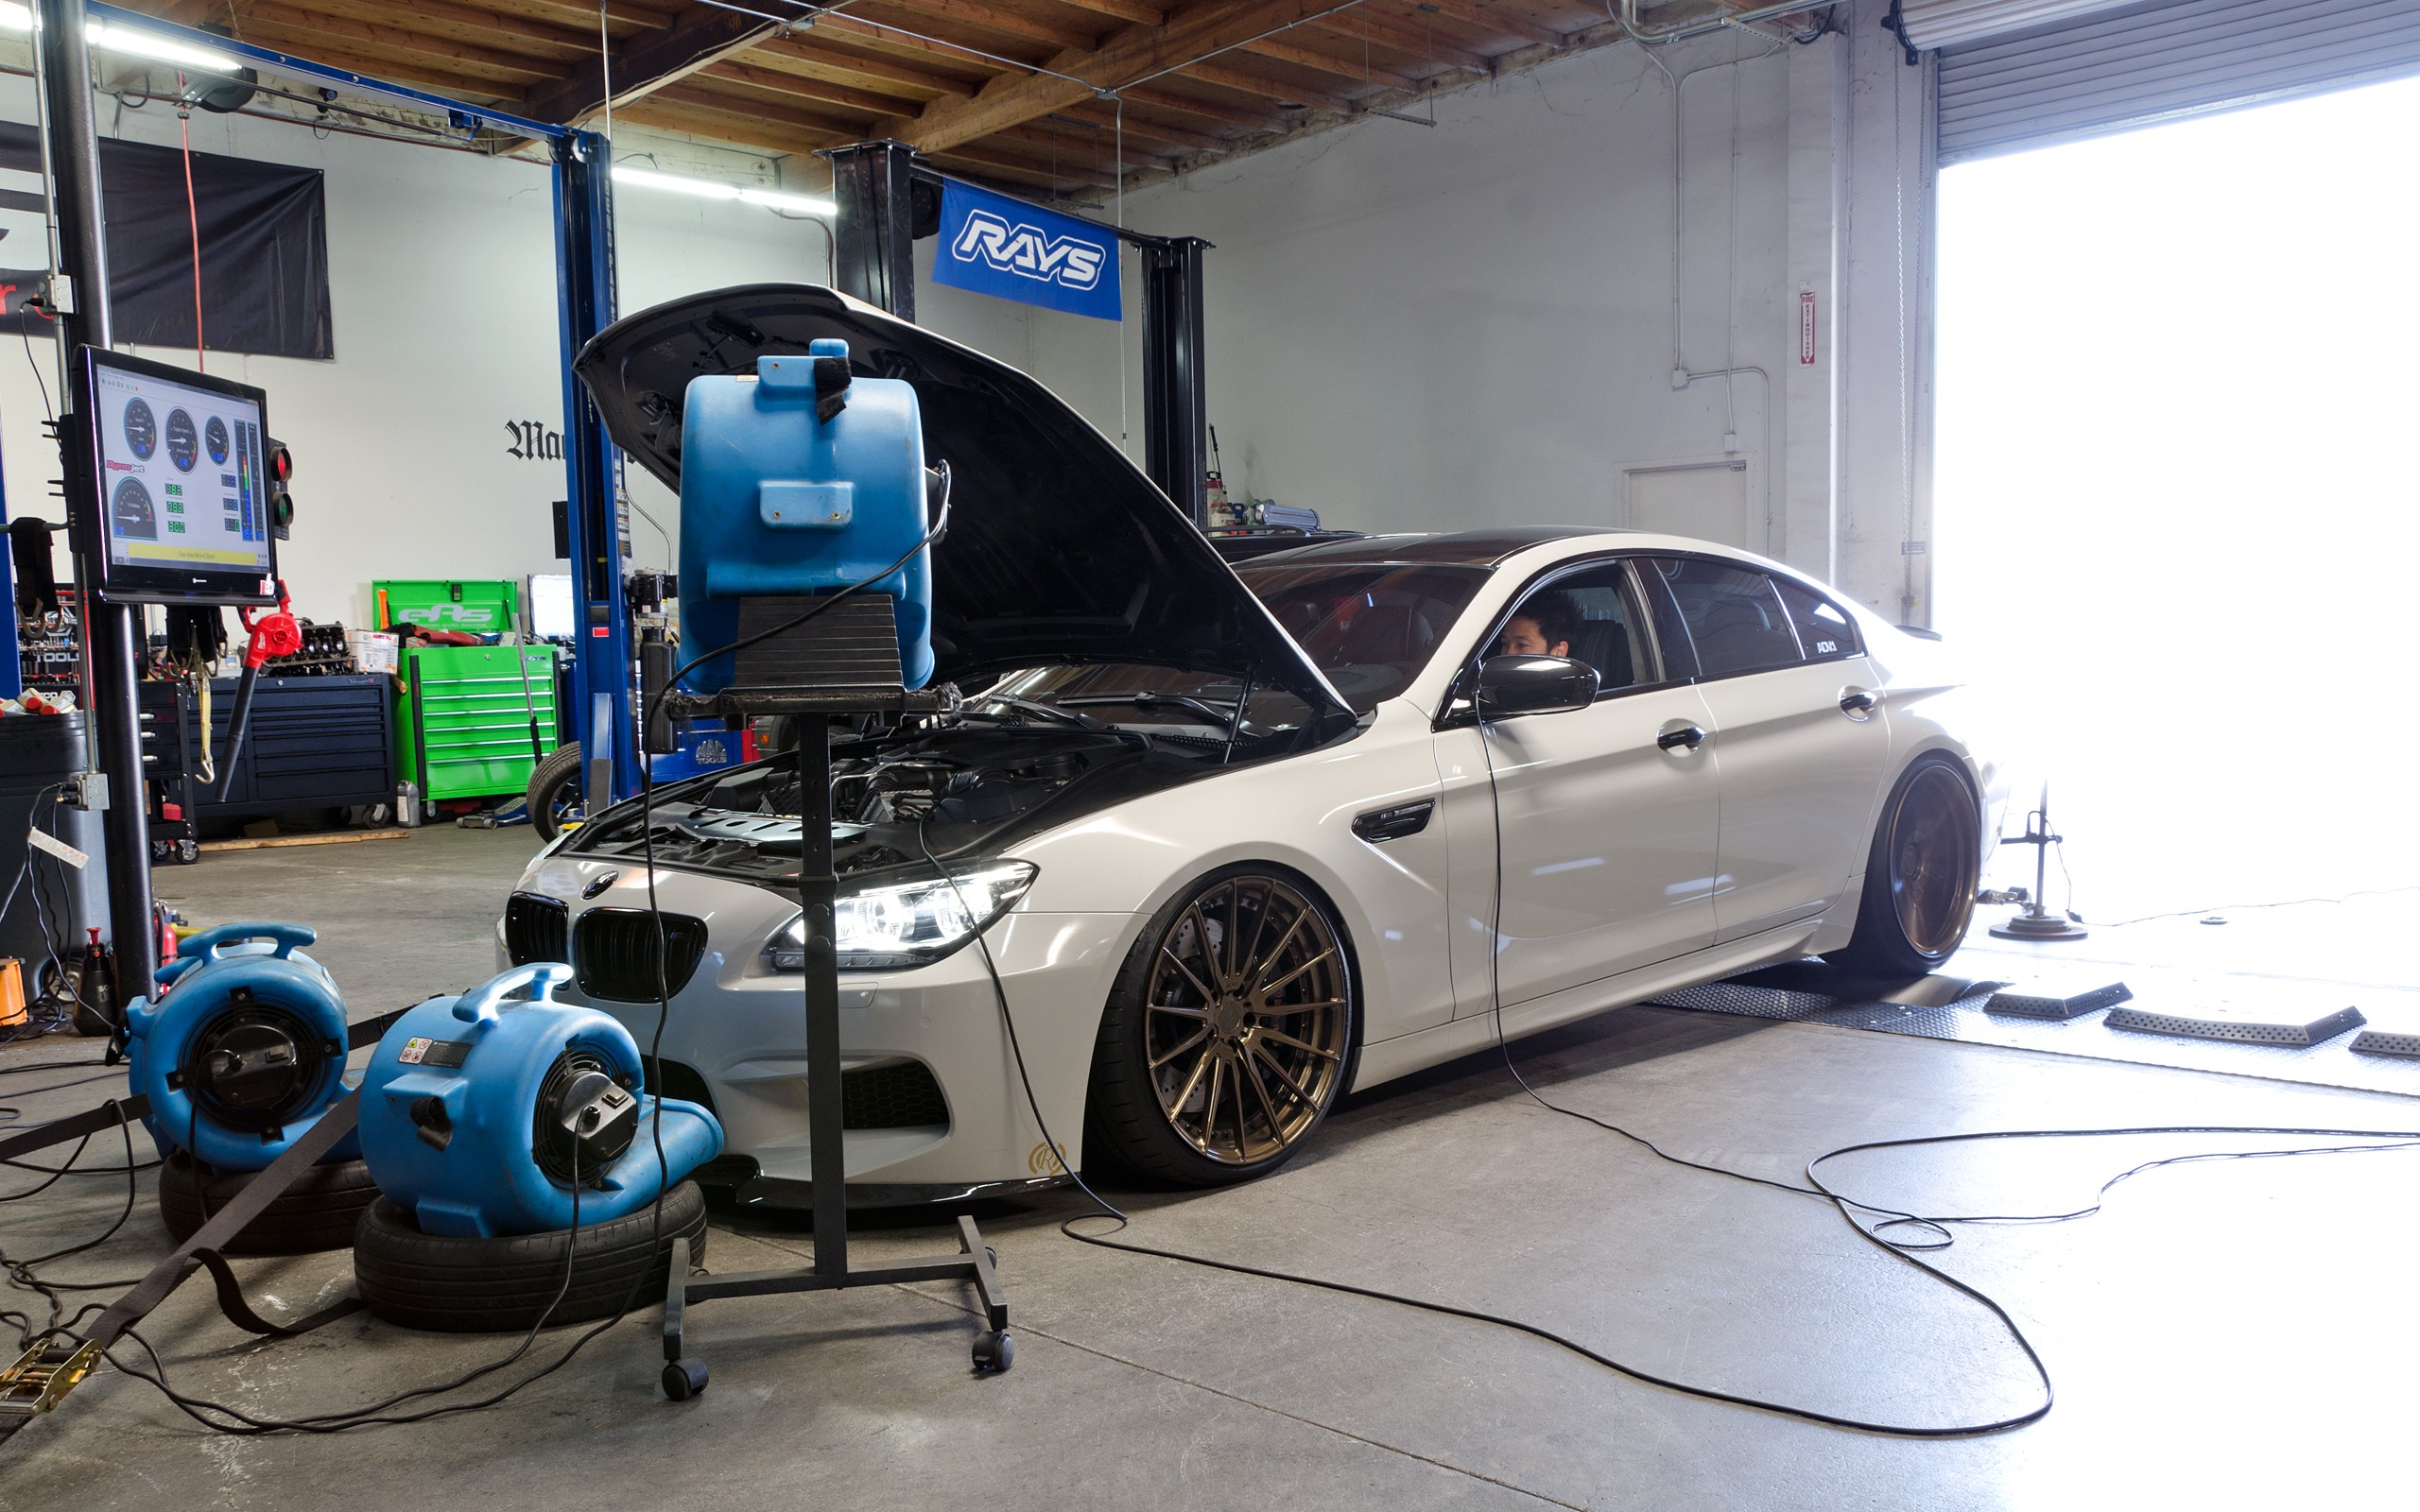 Bmw M6 Gran Coupe Hops On A Dyno And Nearly Blows It To Pieces Fuse Box